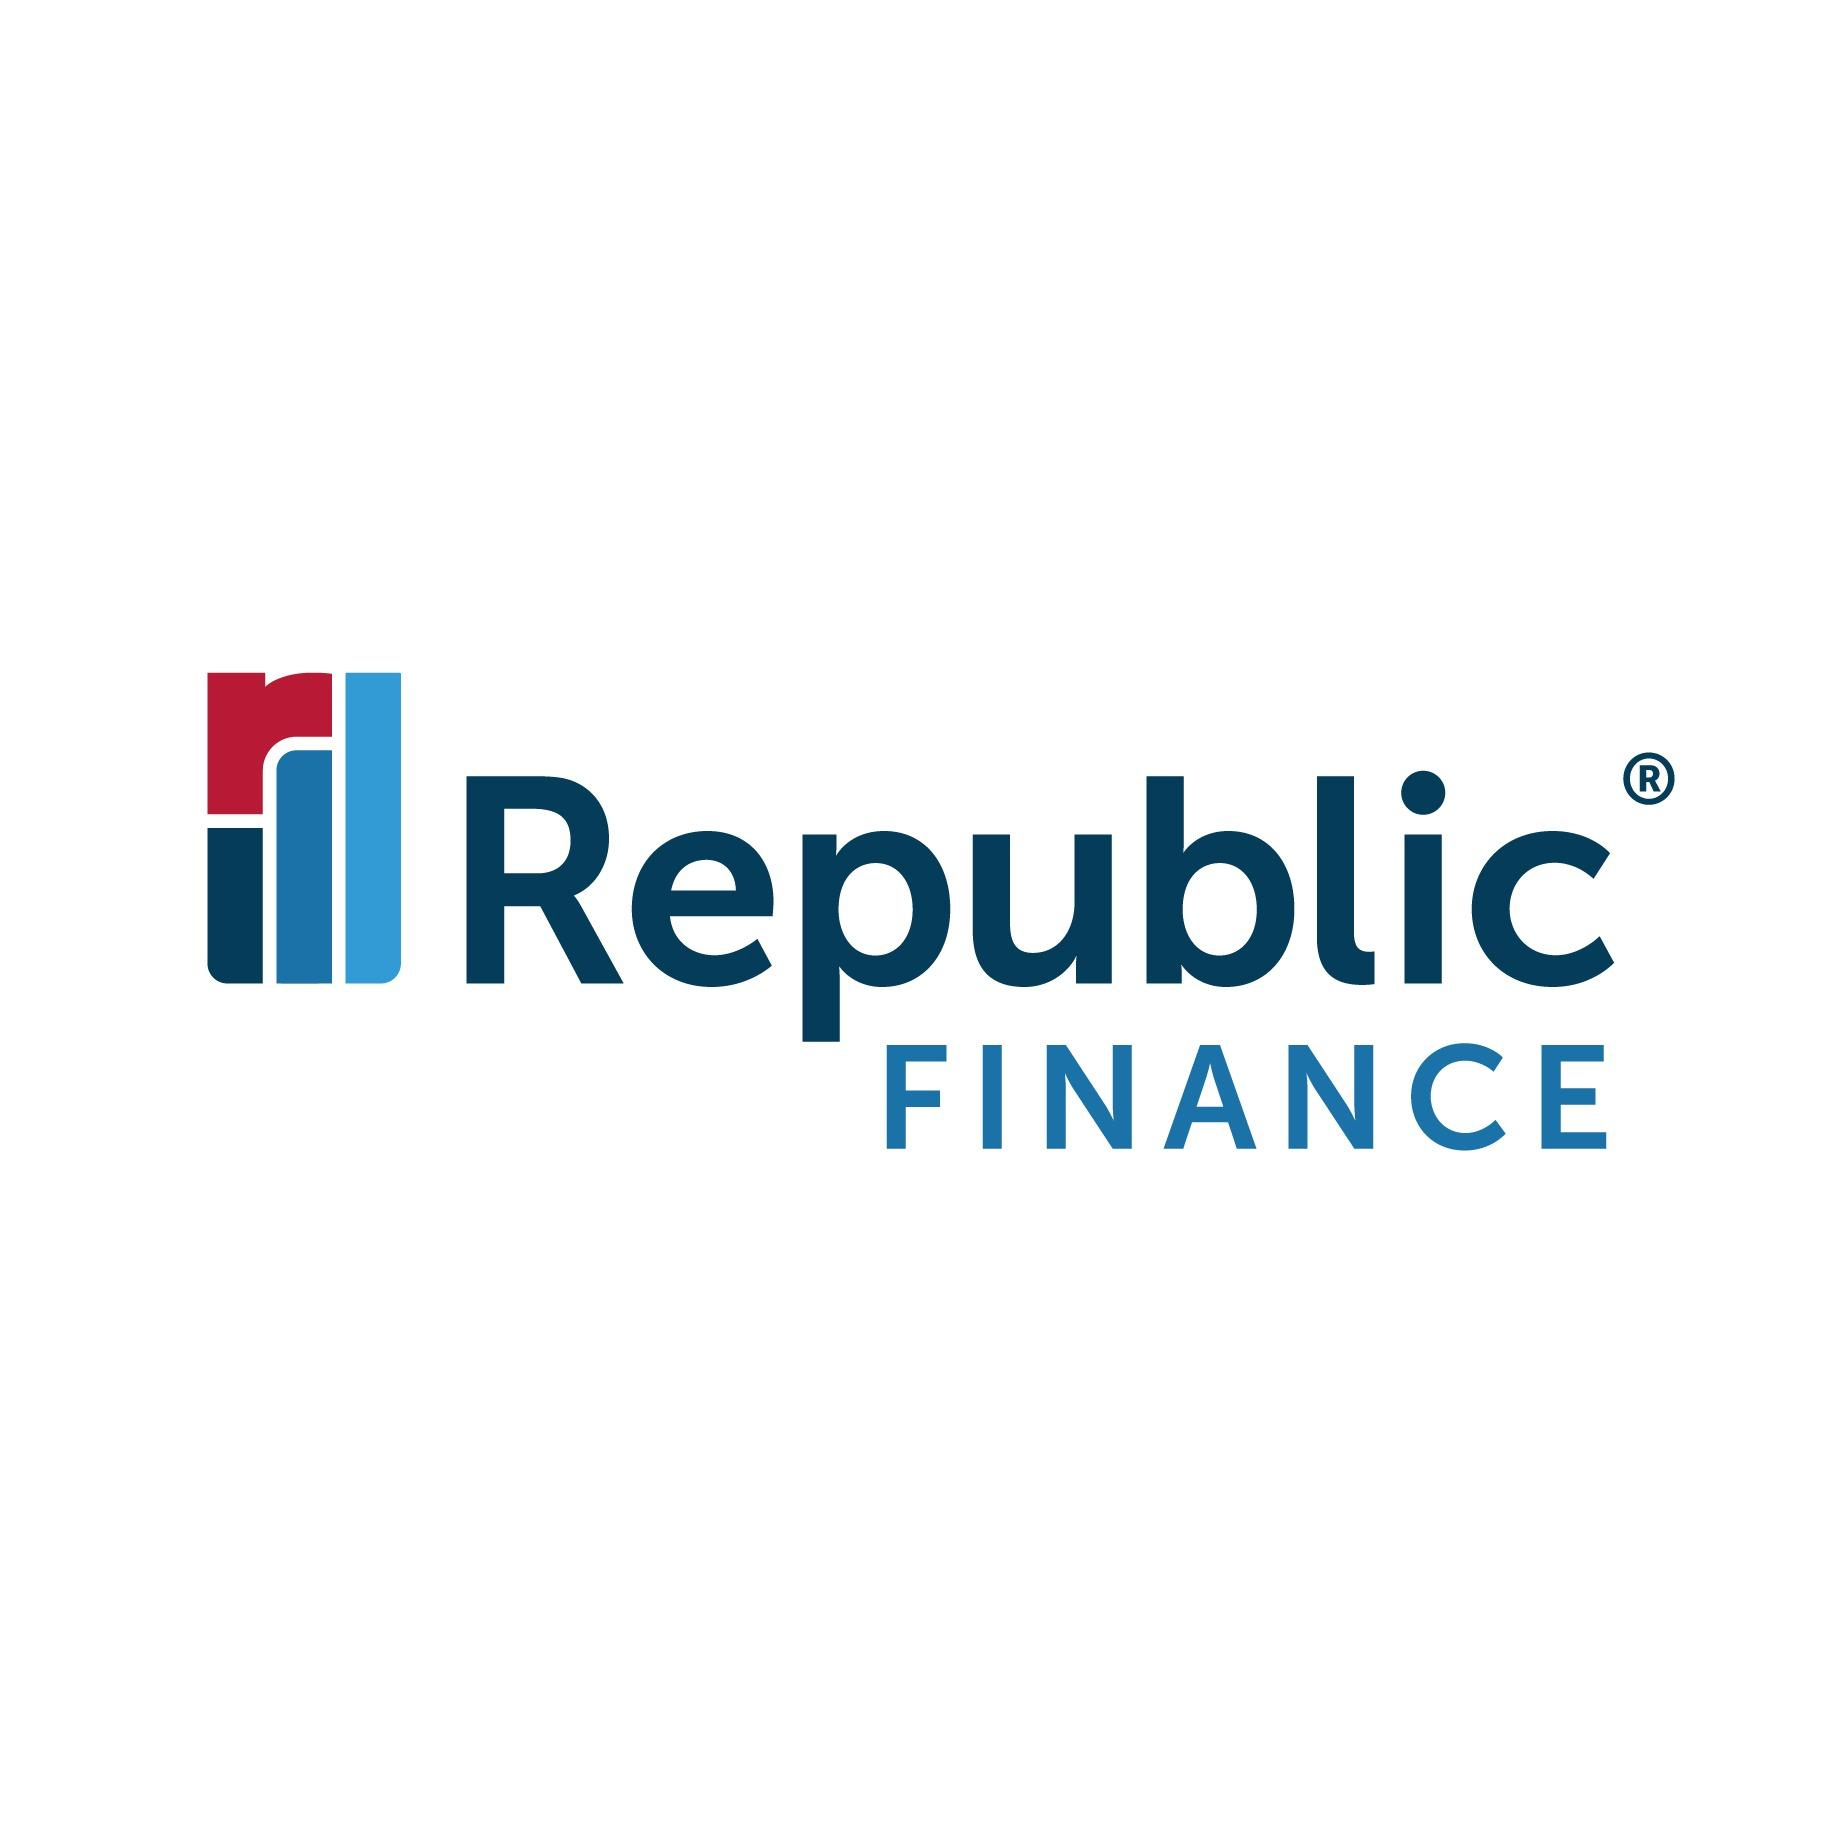 Republic Finance - Shreveport, LA 71106 - (318)861-7610 | ShowMeLocal.com